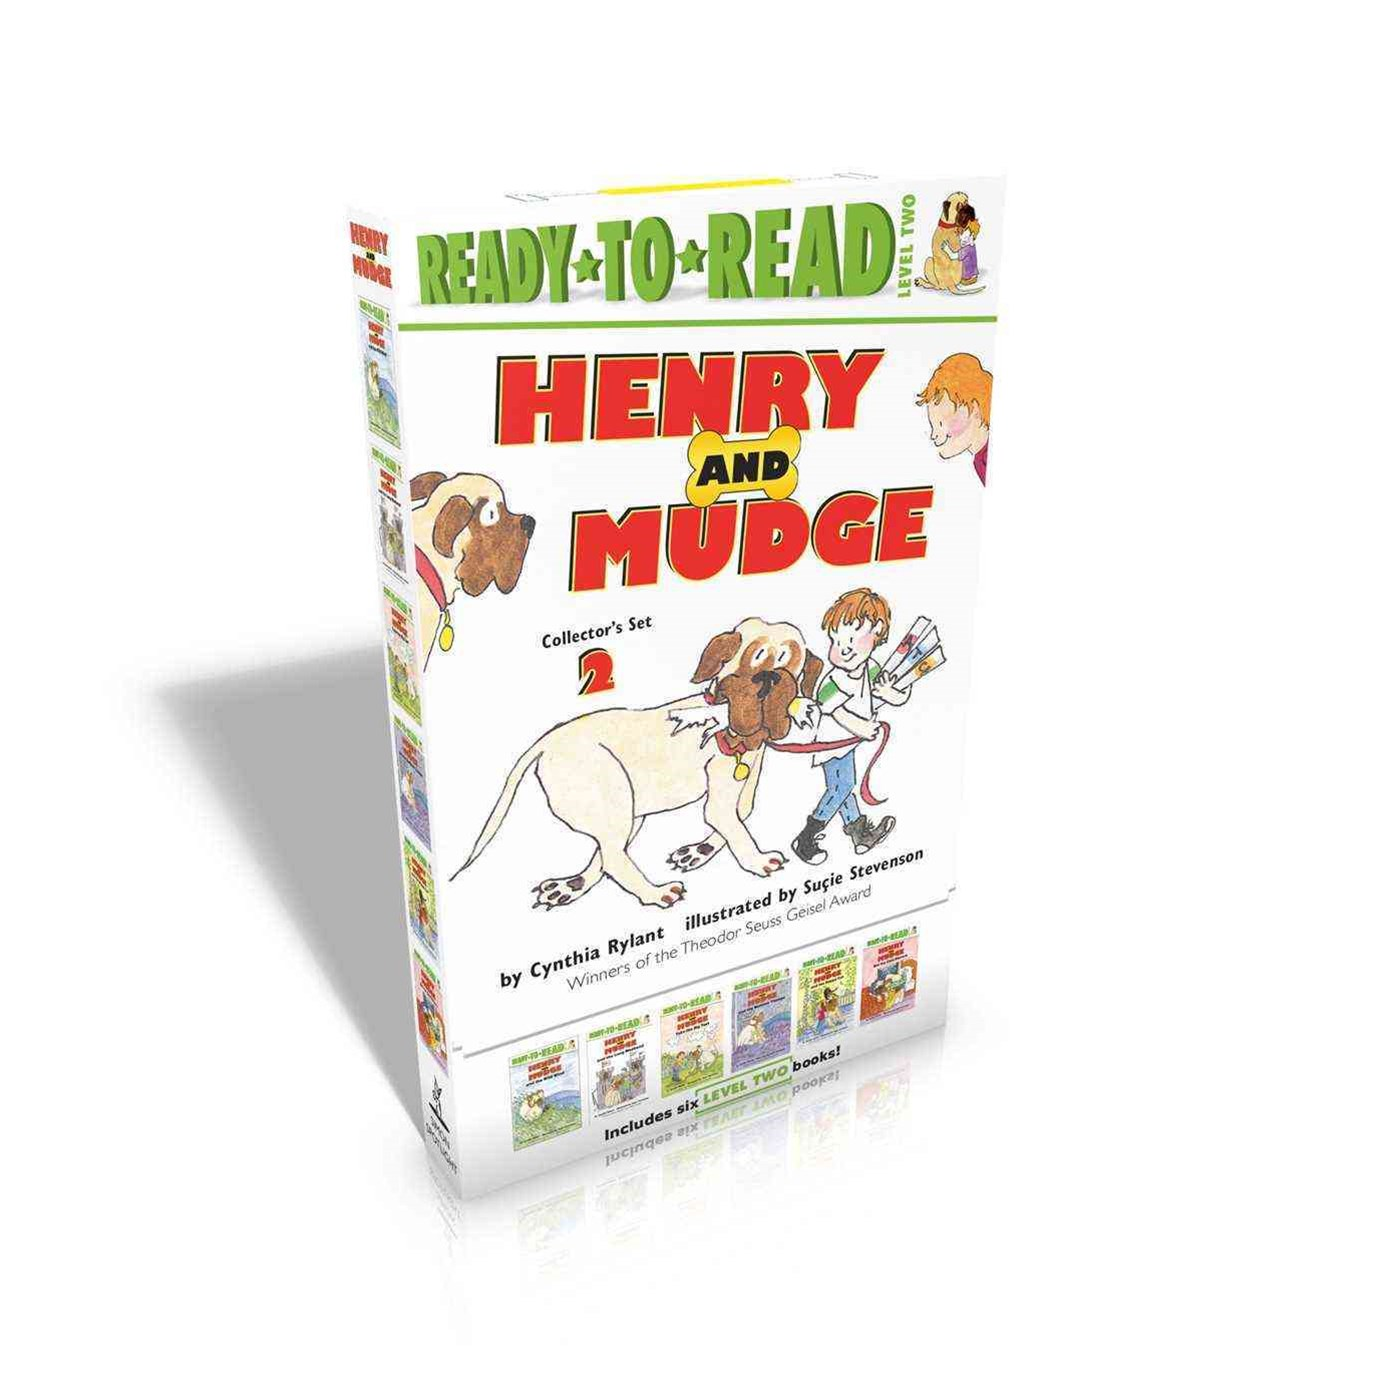 Henry and Mudge Collector's Set #2